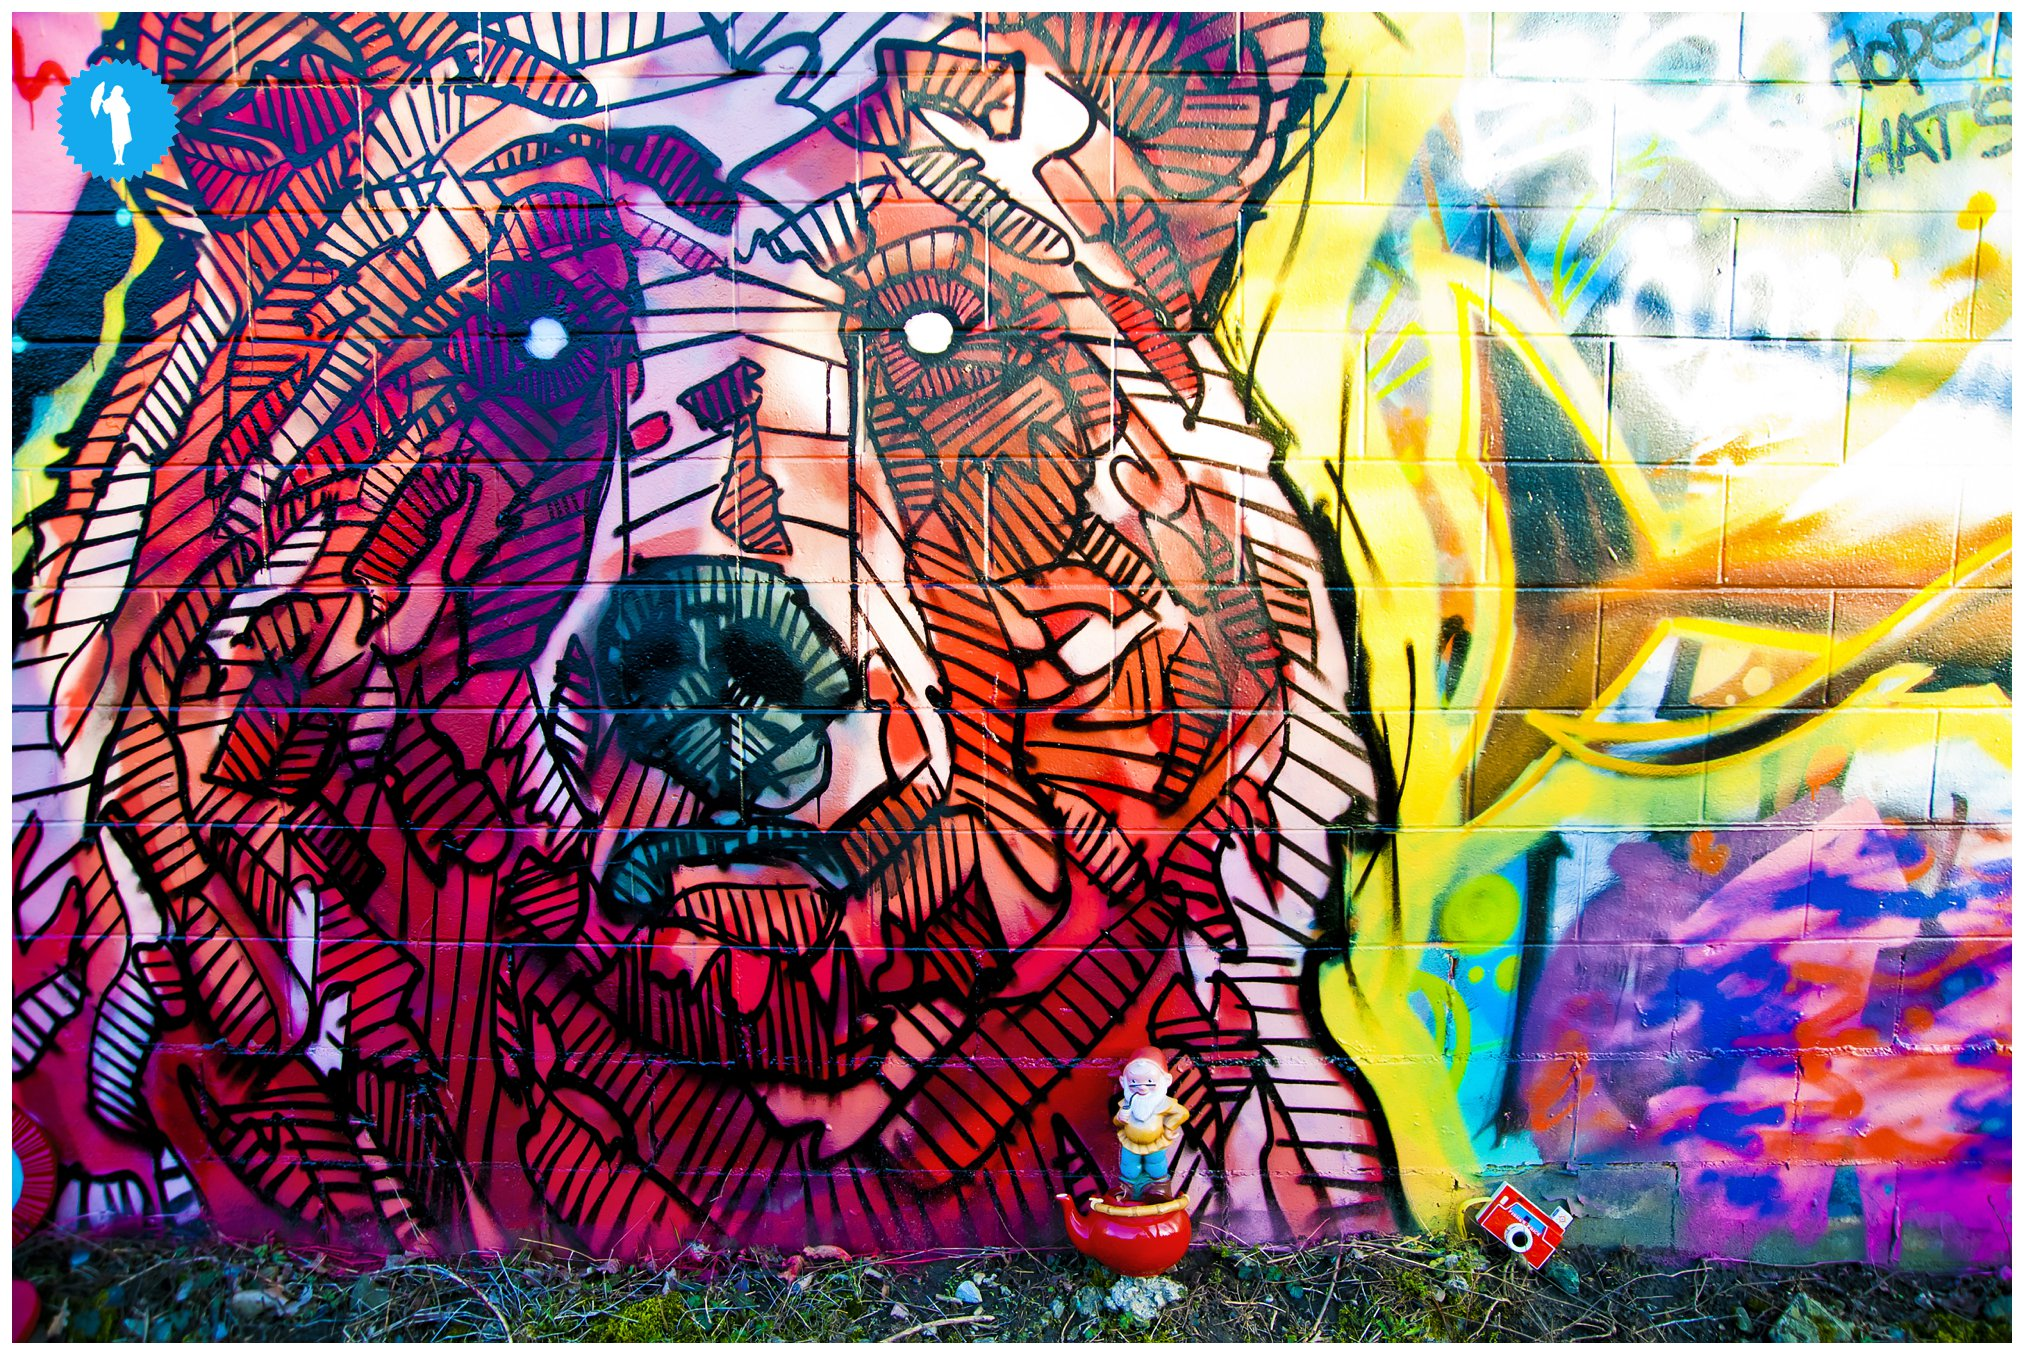 Graffiti by Chris Austin, photography by Emily Beatty, 2013.